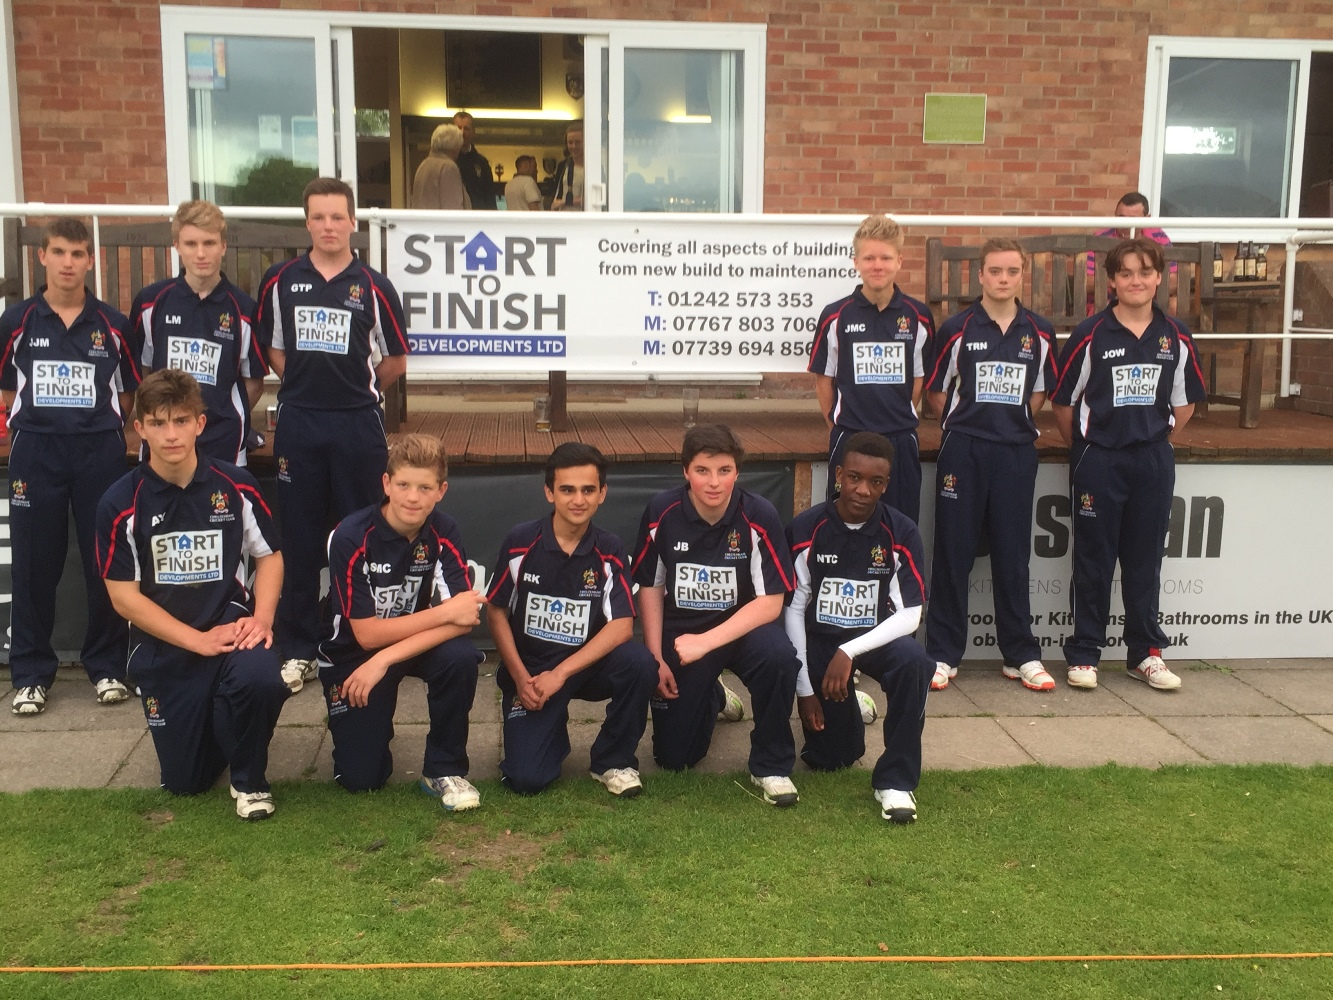 Chipping Sodbury to stage first Jelf U16 T20 finals day